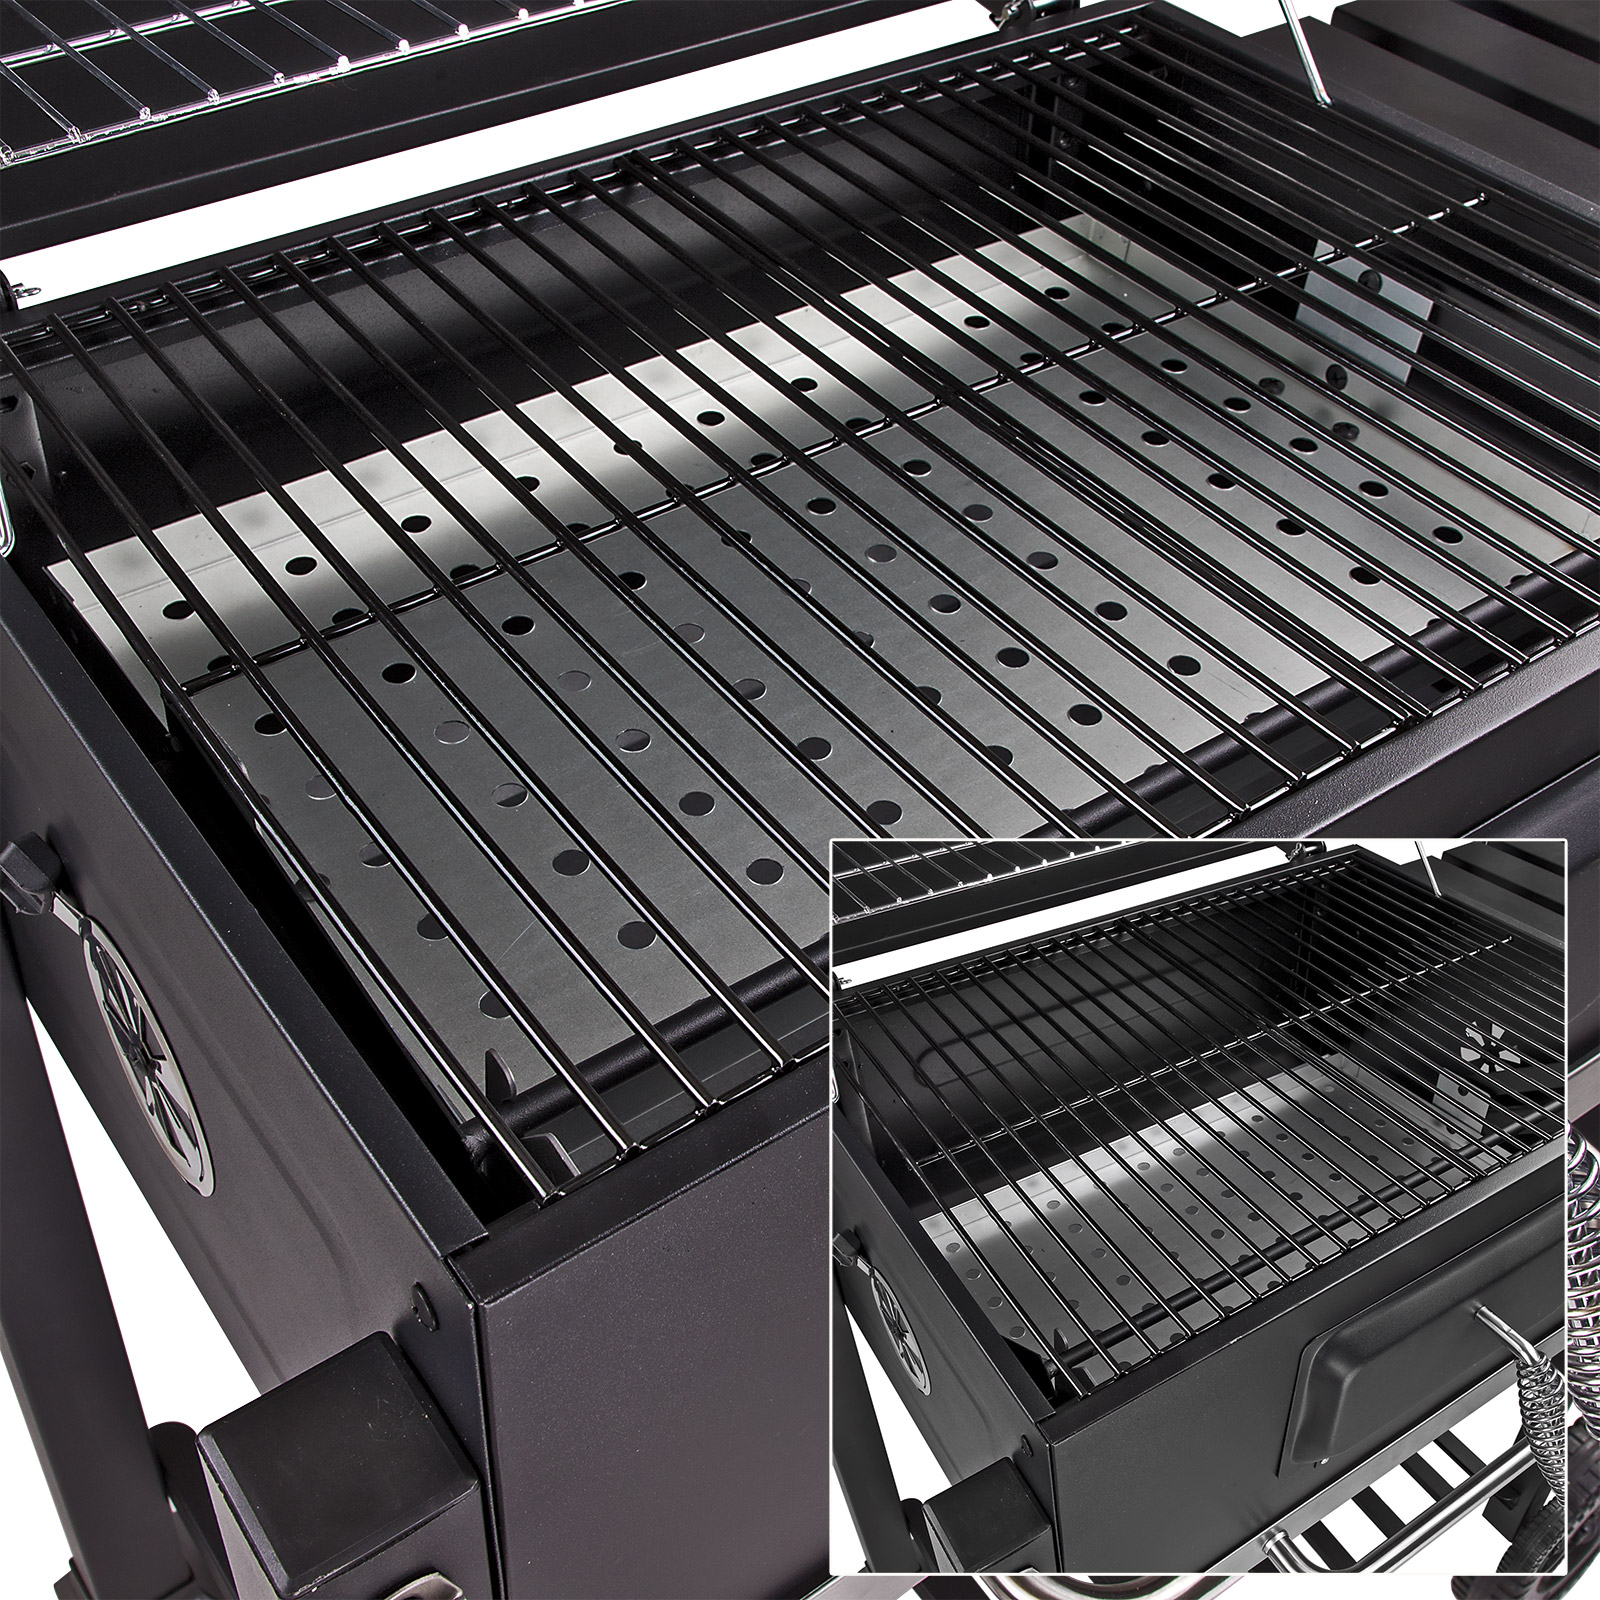 tepro holzkohlegrill toronto grill barbecue wagengrill standgdrill neu 17469 ebay. Black Bedroom Furniture Sets. Home Design Ideas